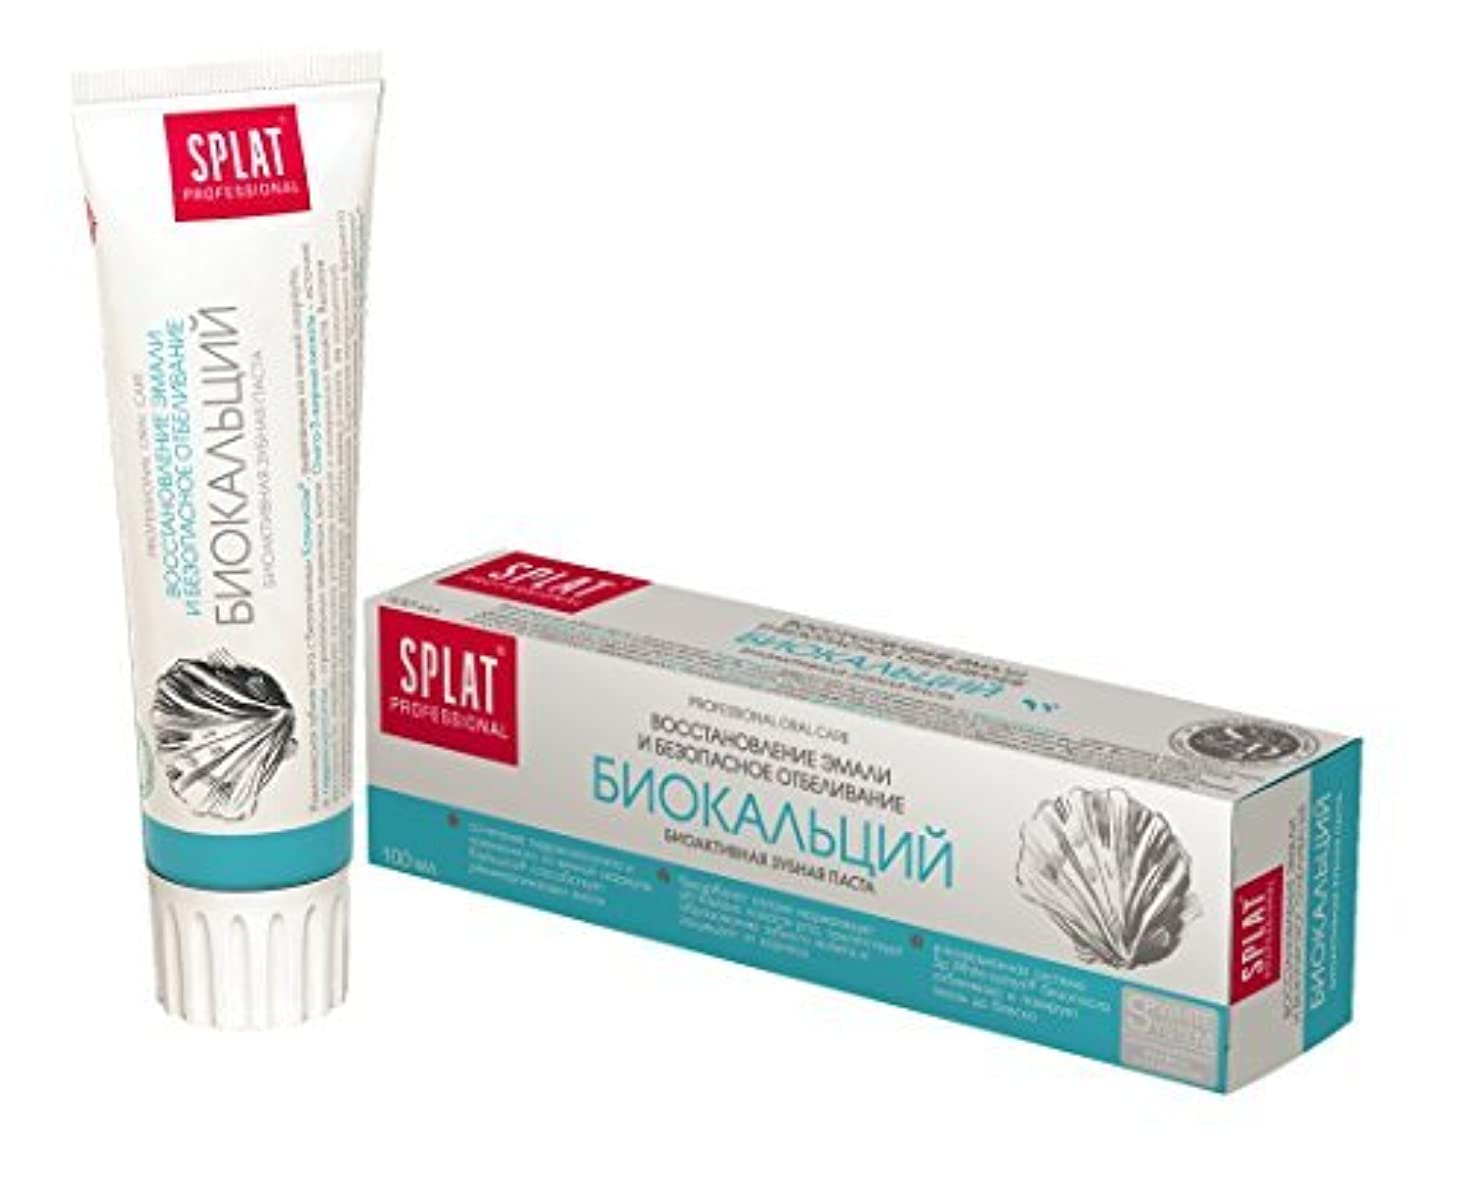 気怠い変色するシャッフルToothpaste Splat Biocalcium Restores Enamel and Safe Whitening 100ml by Splat